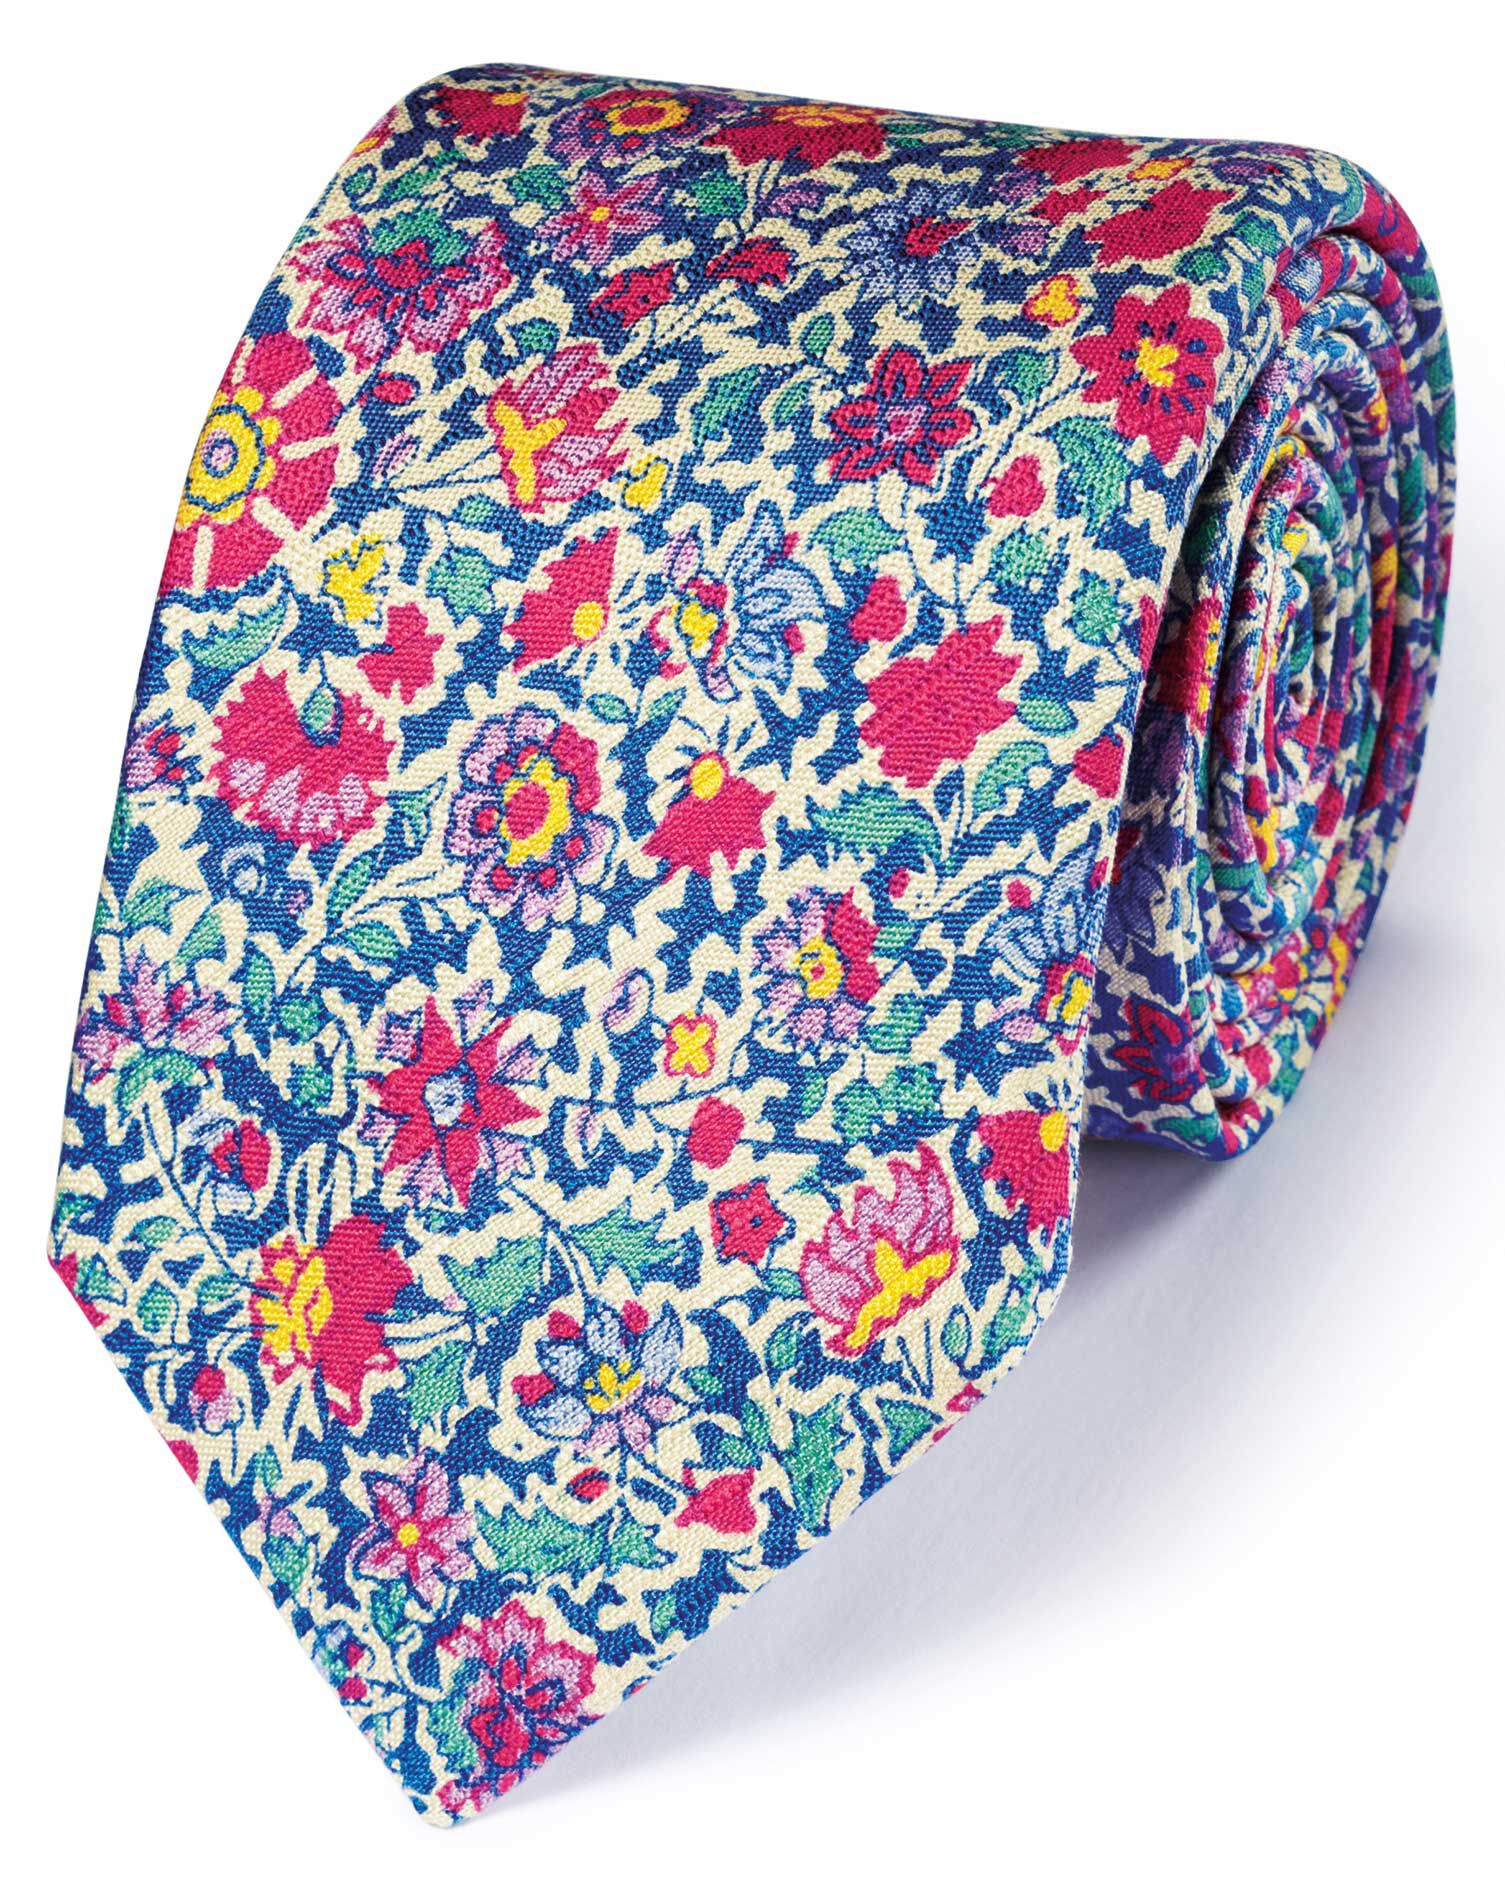 Pink Multi Cotton Mix Printed Floral Italian Luxury Tie Size OSFA by Charles Tyrwhitt